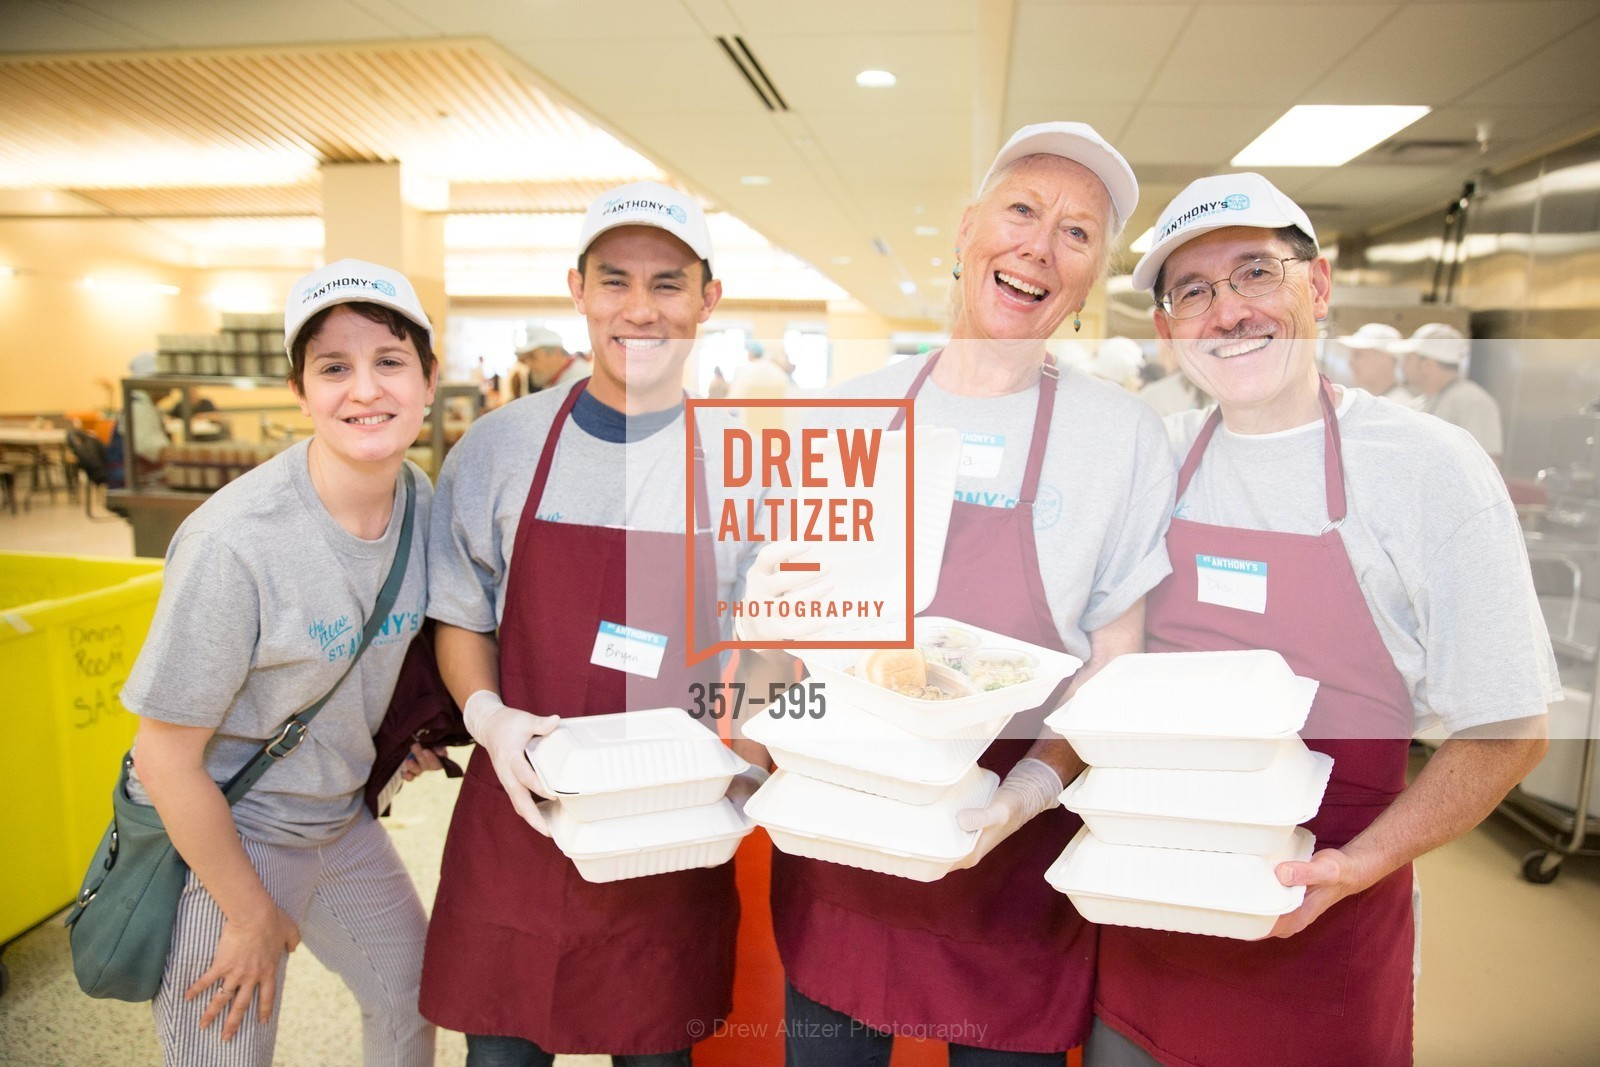 Colleen Rivecca, Bryan, Katherine, Drew, ST. ANTHONY'S Dining Room Ribbon Cutting Ceremony, US, October 4th, 2014,Drew Altizer, Drew Altizer Photography, full-service agency, private events, San Francisco photographer, photographer california